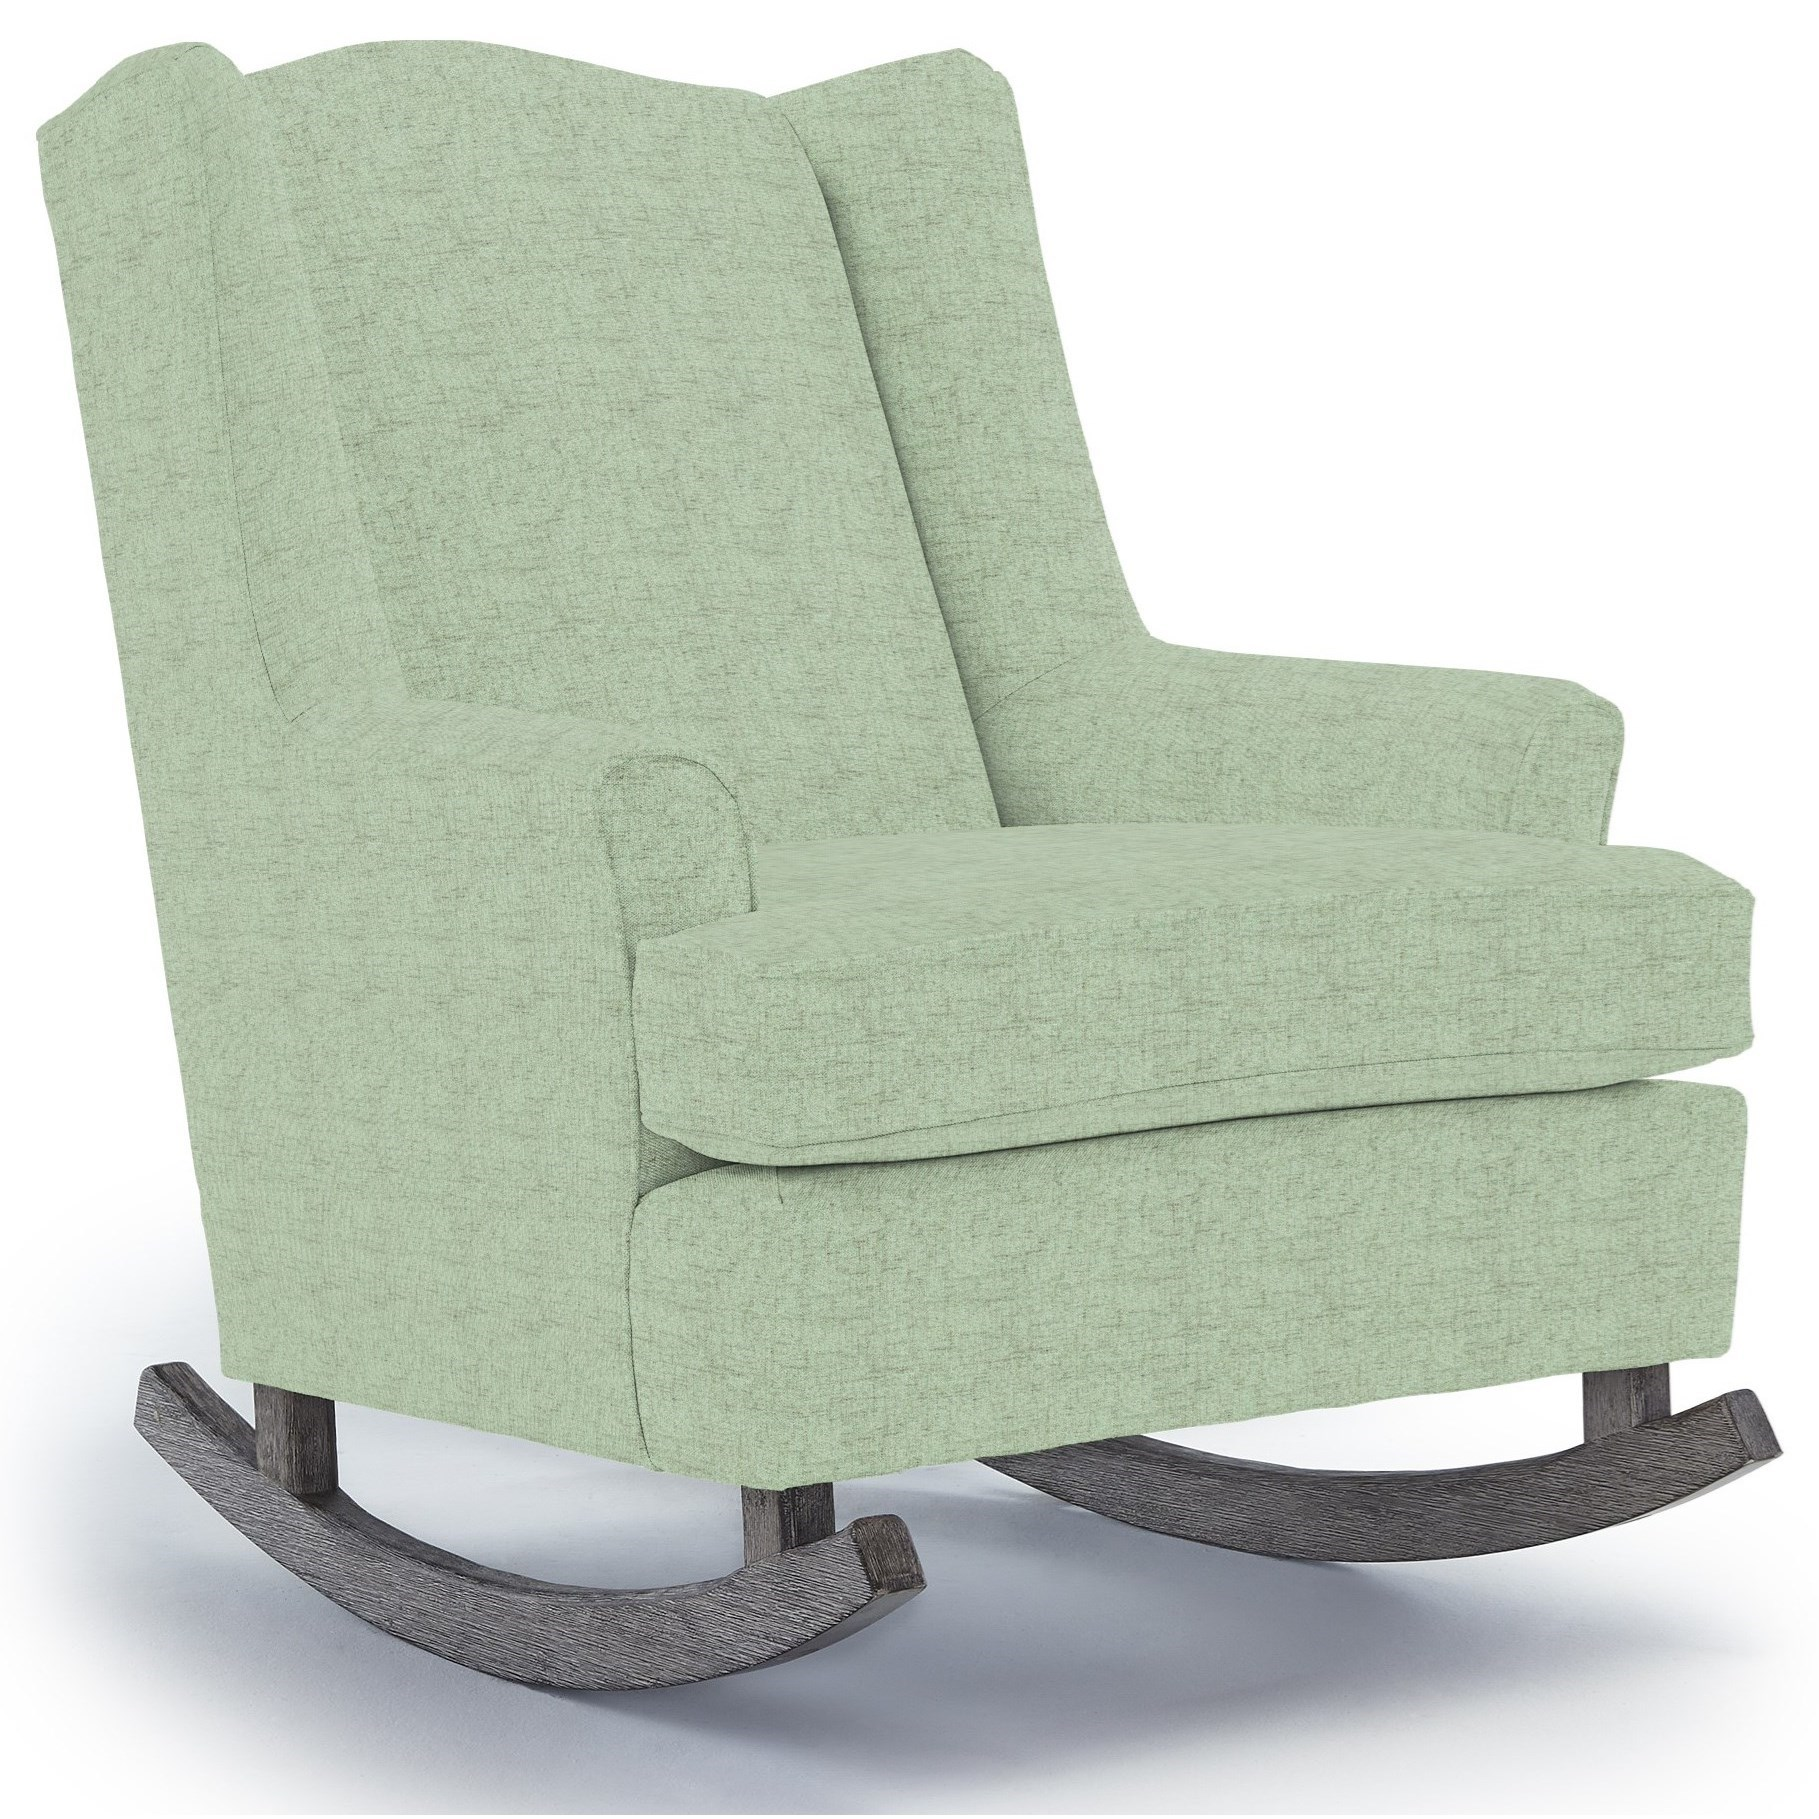 Runner Rockers Willow Rocking Chair by Best Home Furnishings at Lucas Furniture & Mattress